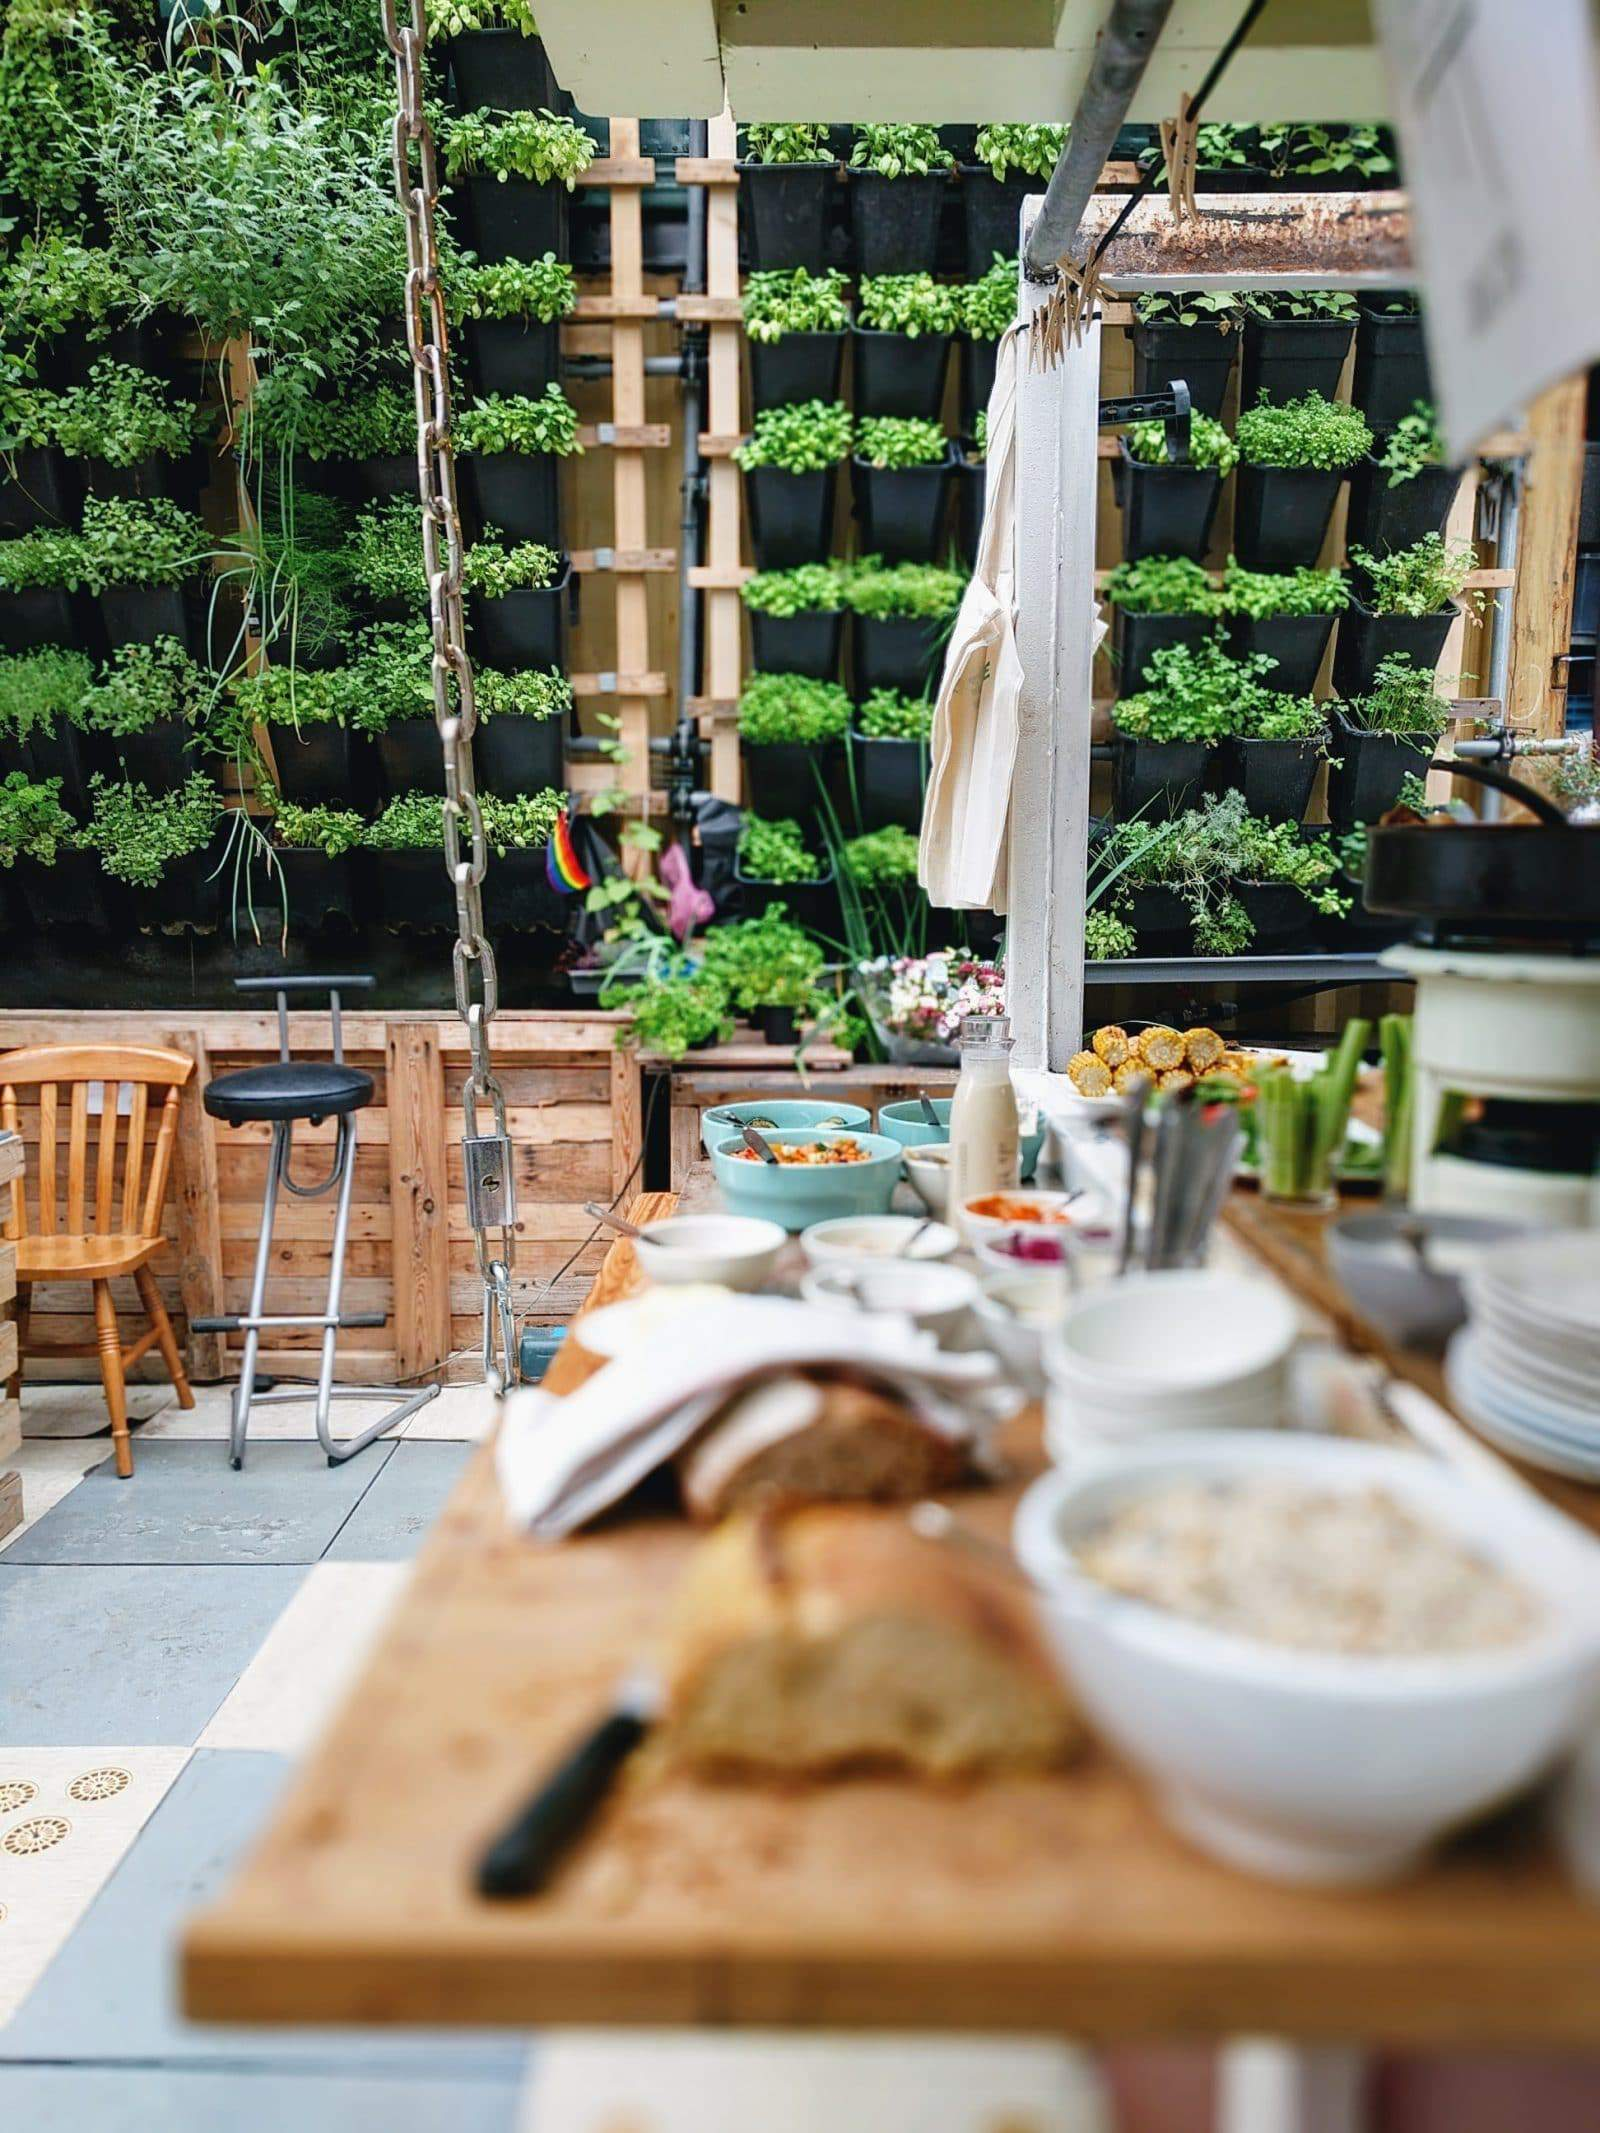 a restaurant using vertical hydroponic gardening system